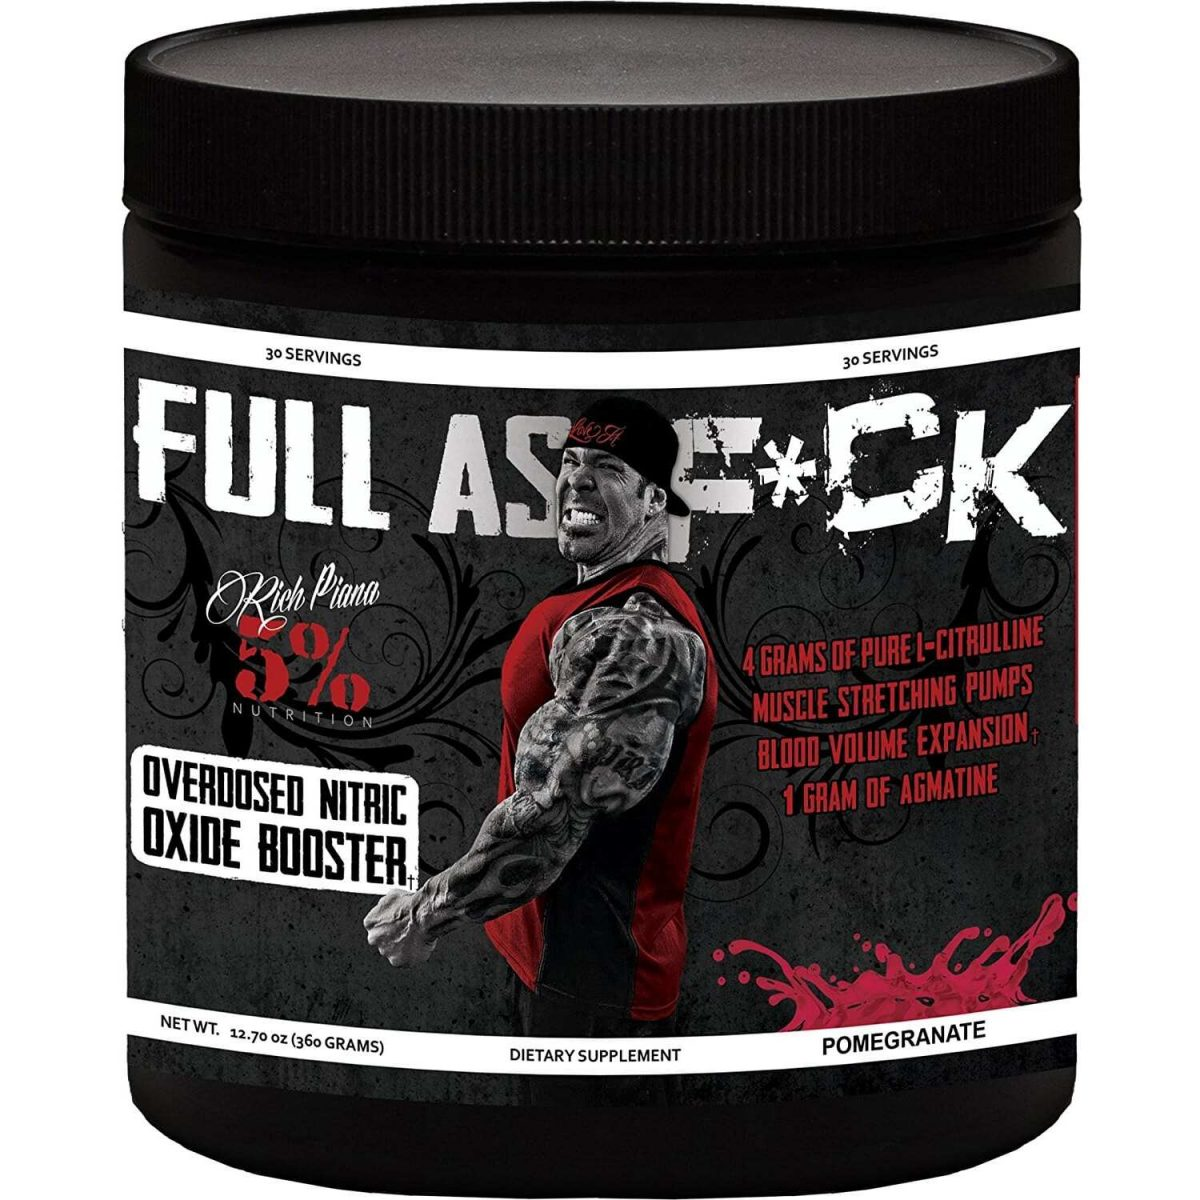 5% Nutrition Full As F*ck Nitric Oxide Booster - Pomegranate